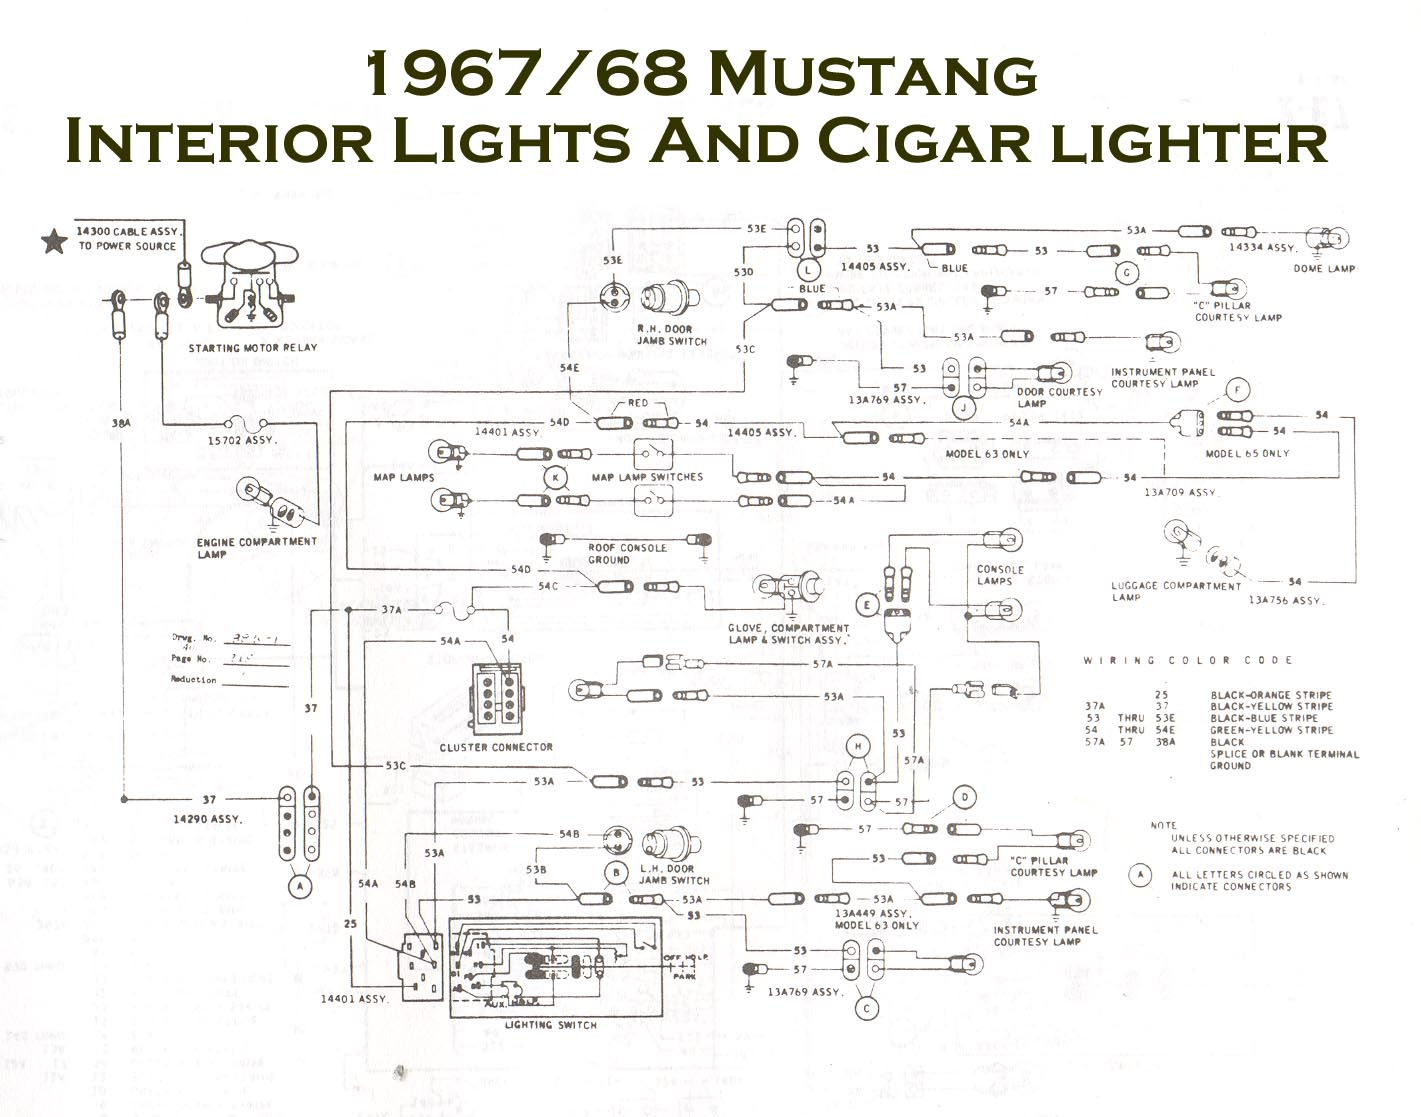 1967 68_console_wiring_diagram vintage mustang wiring diagrams wiring diagram for mustang 2054 skid steer at gsmportal.co